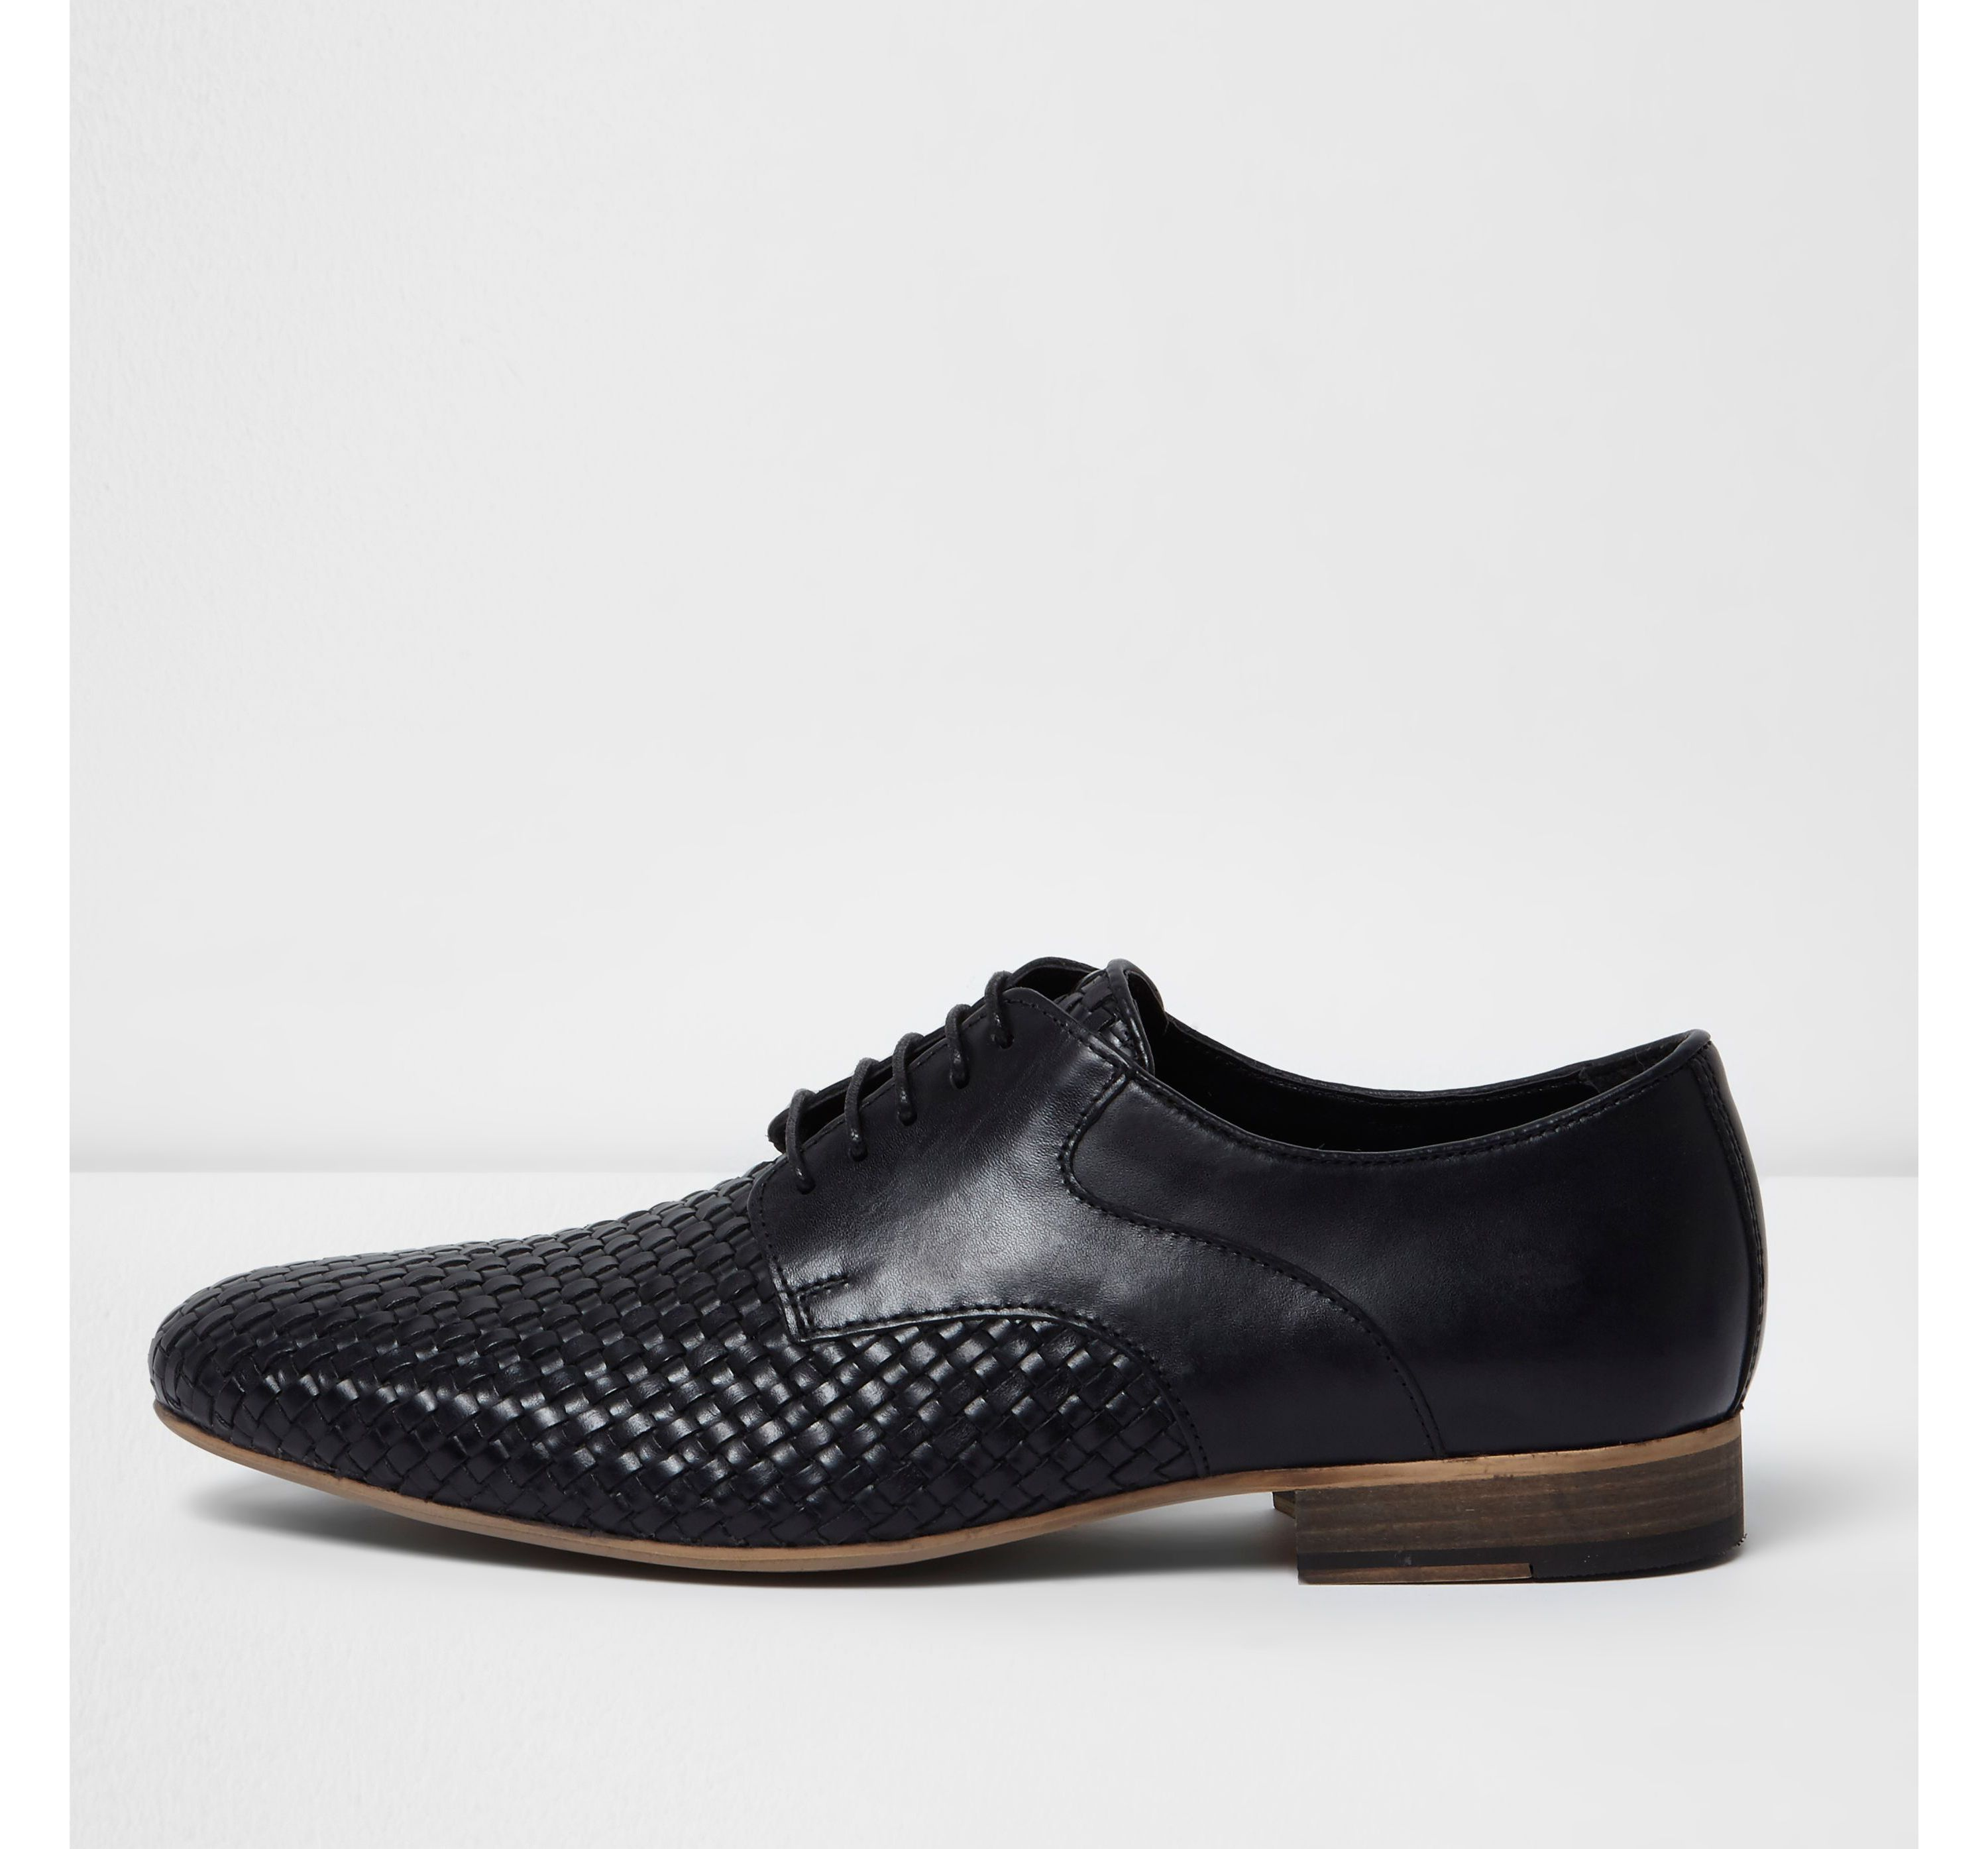 River Island Mens Black woven lace-up shoes